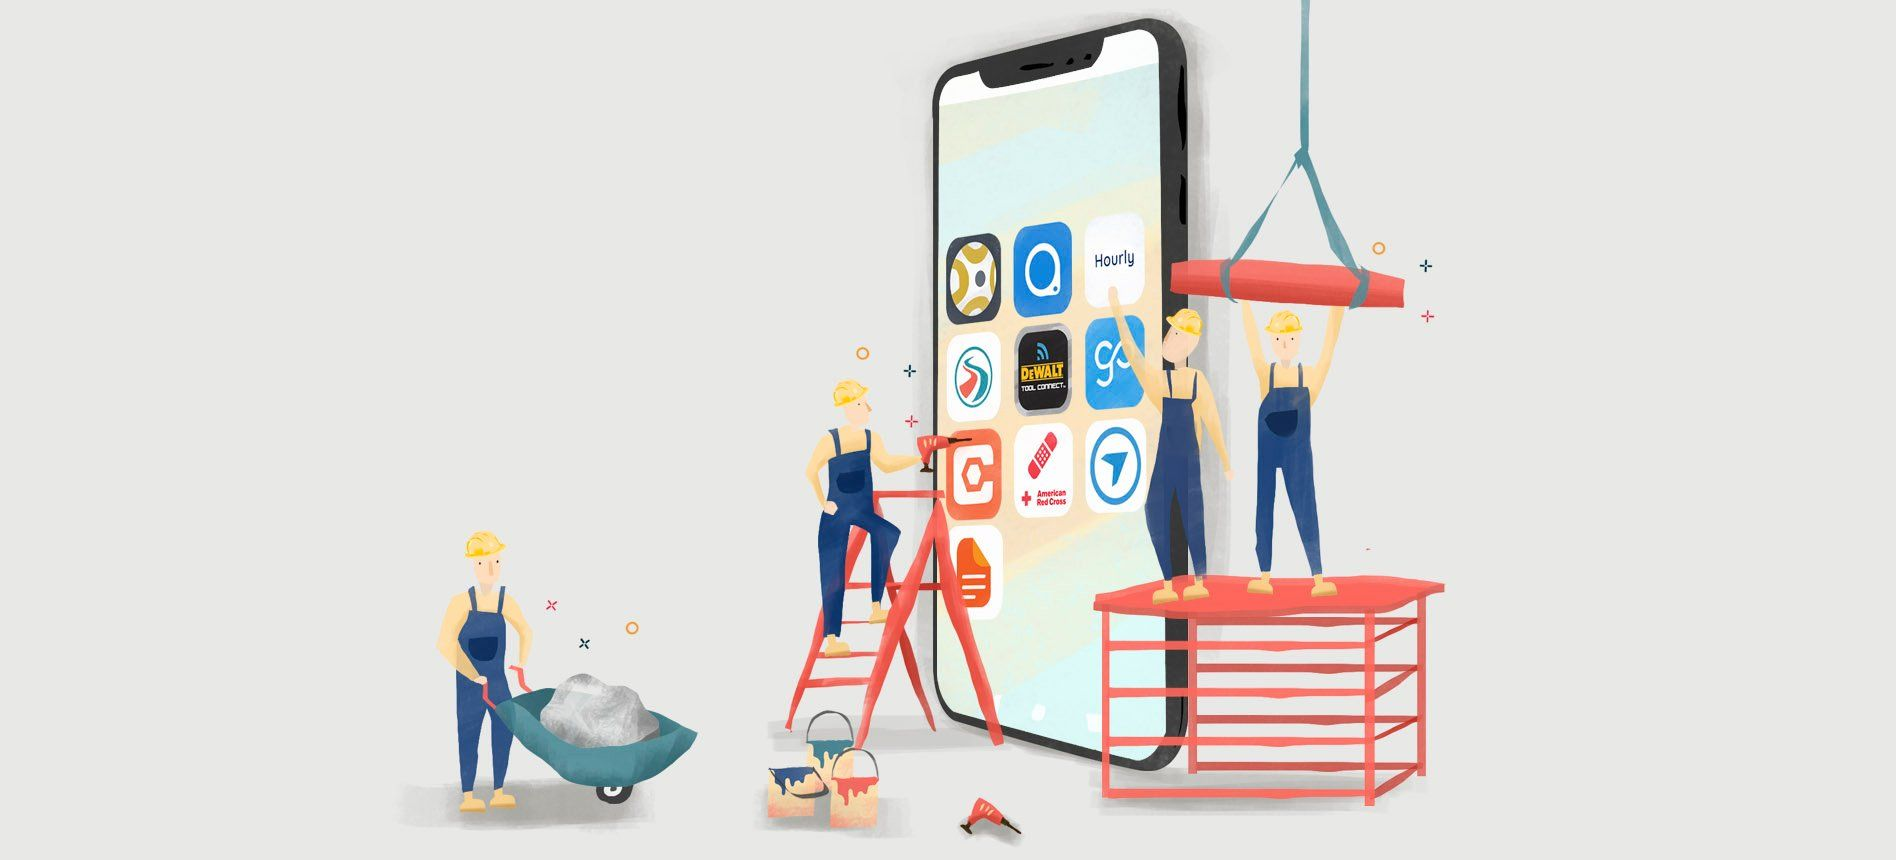 /growing-your-construction-business-theres-an-app-for-that-p52k3u39 feature image